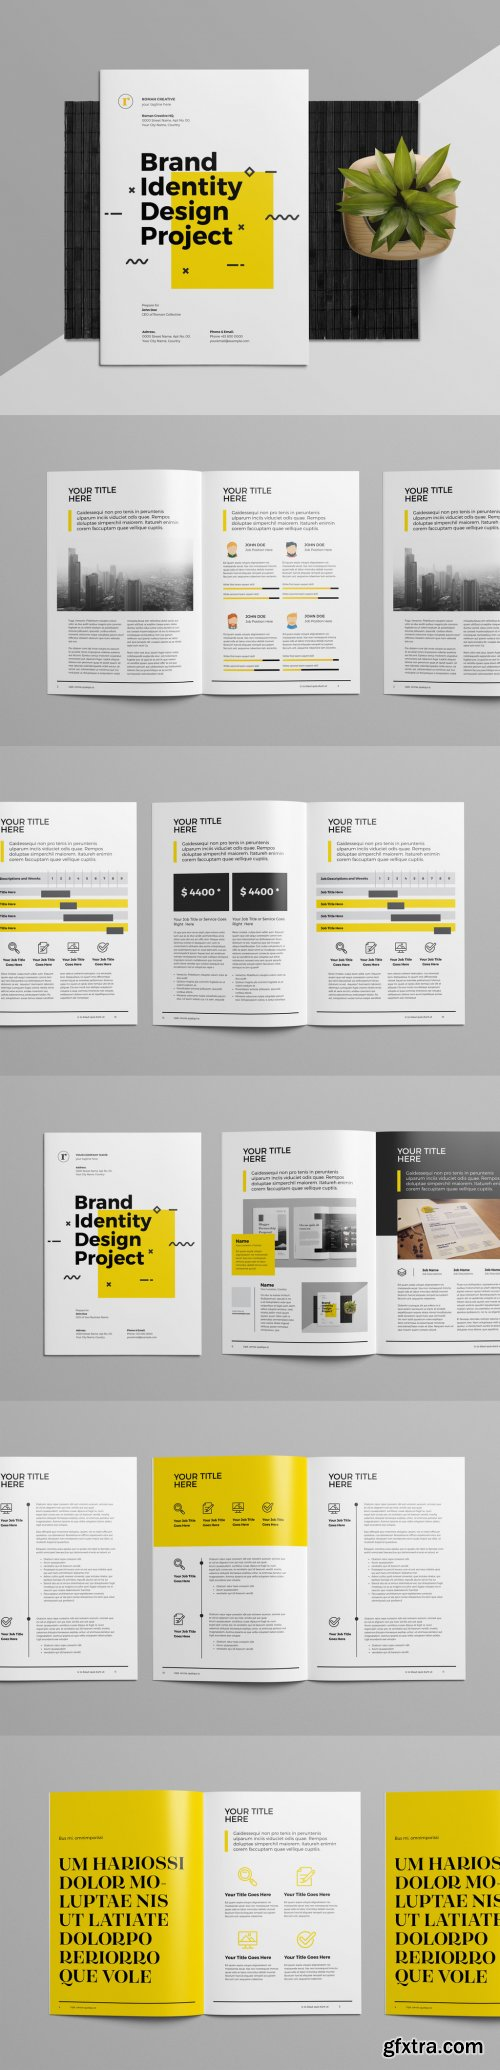 Brand Identity and Proposal Layout with Yellow Accents 223606446